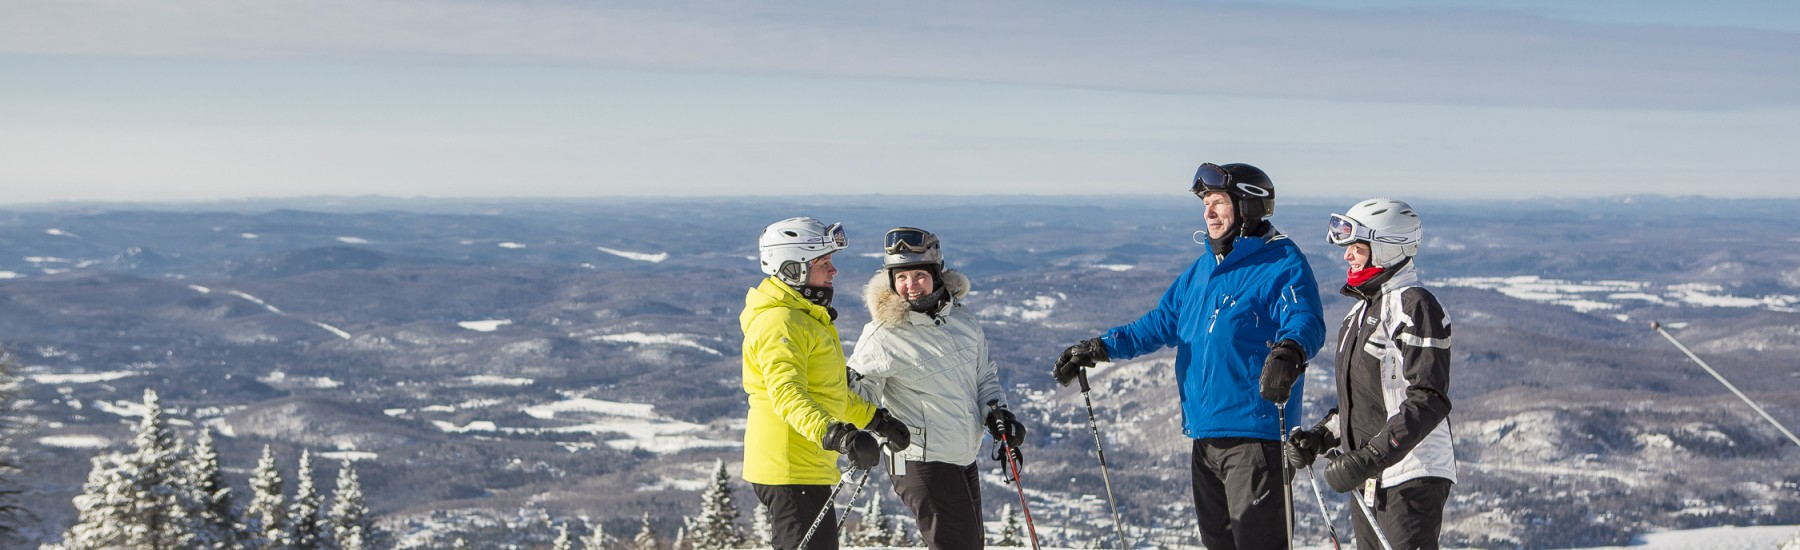 MD_MontTremblant2013_MR-0025